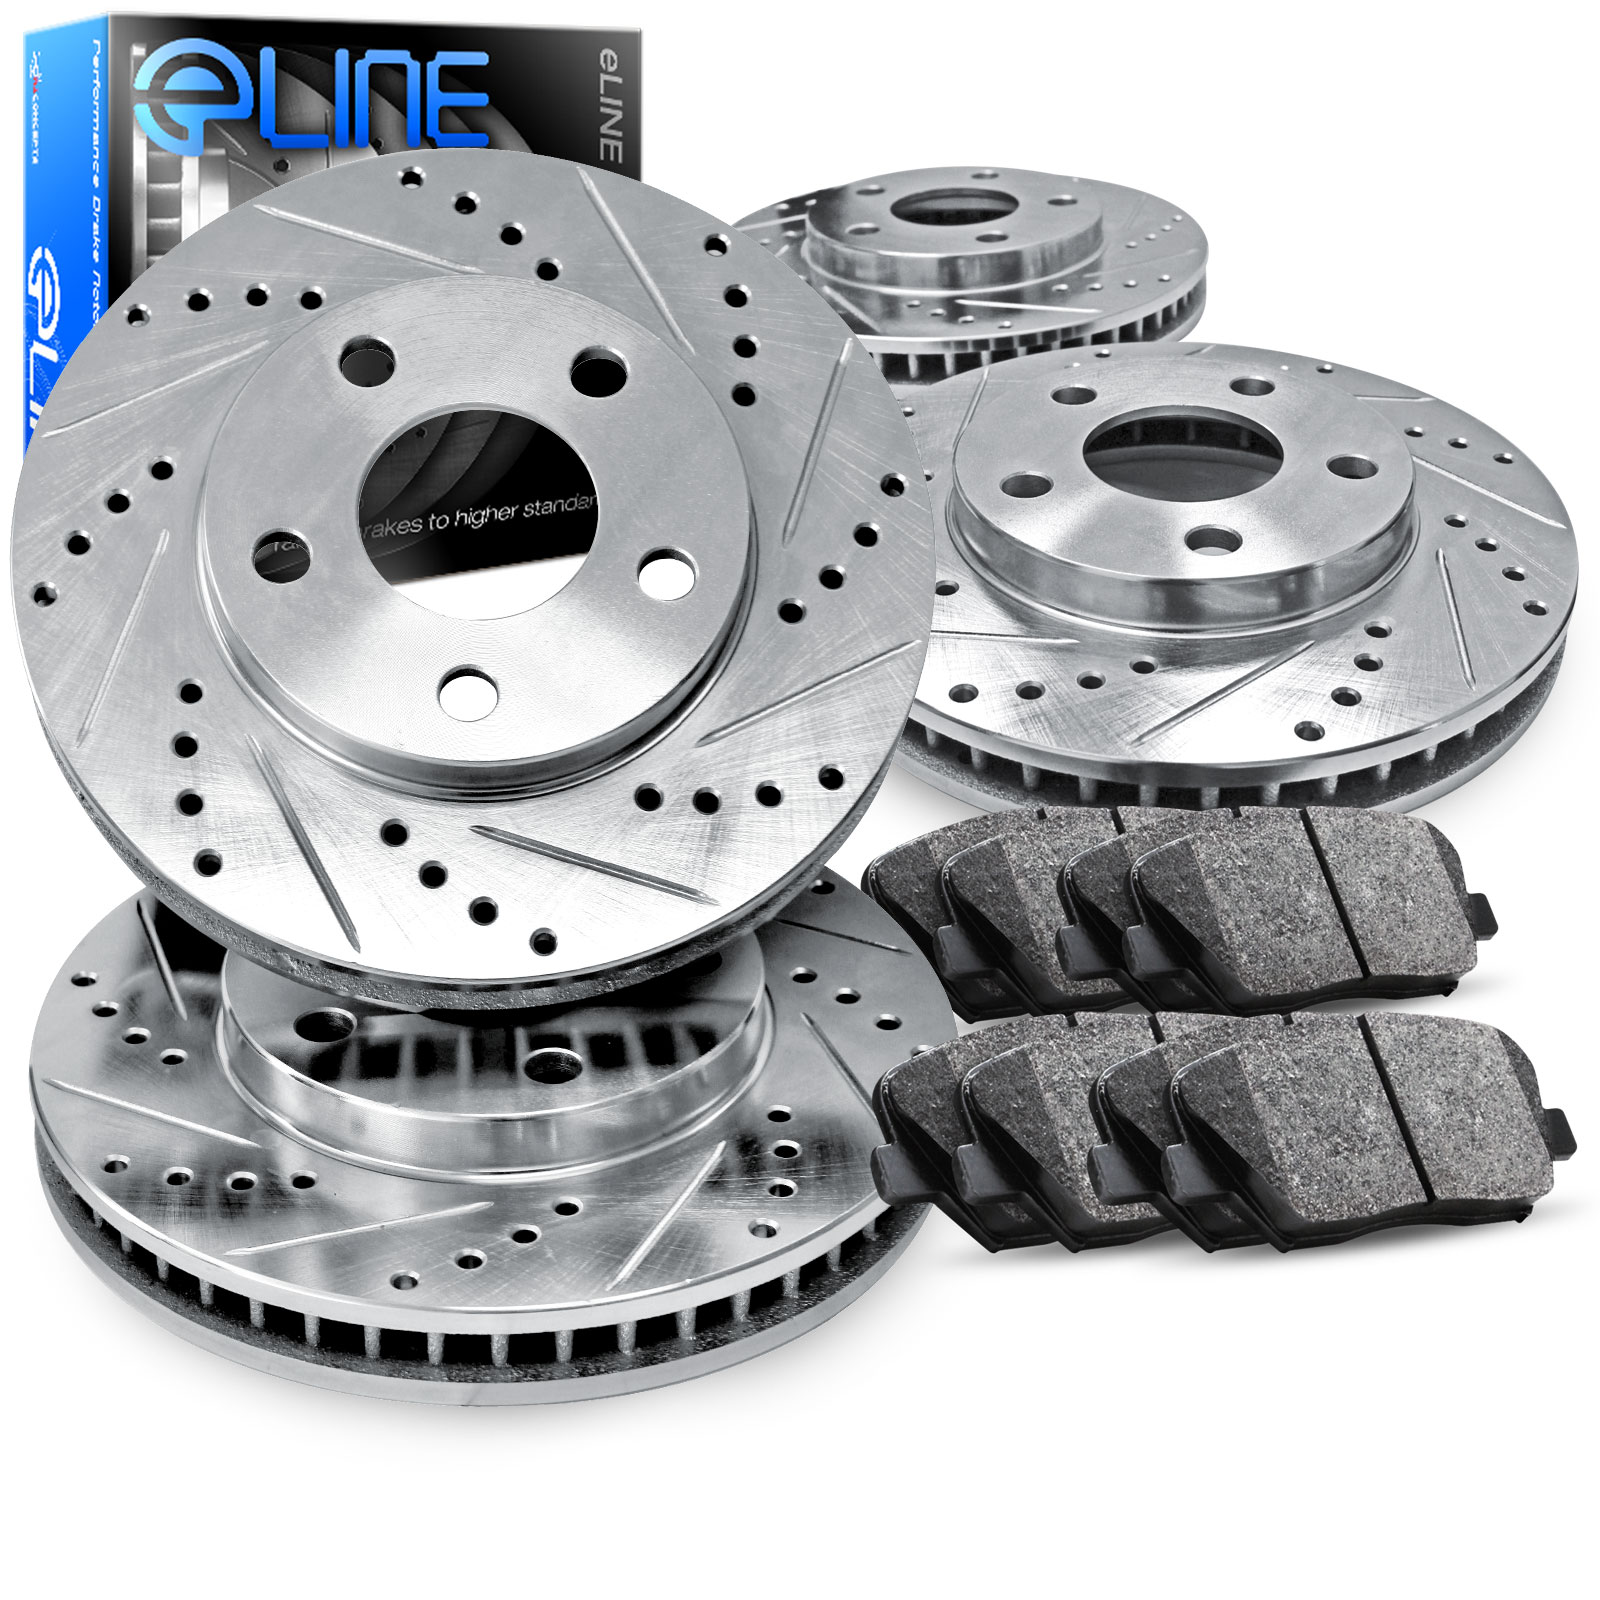 1995 Toyota Camry DX 2.2L Front And Rear Drilled Slotted Brake Rotors + Ceramic Pads